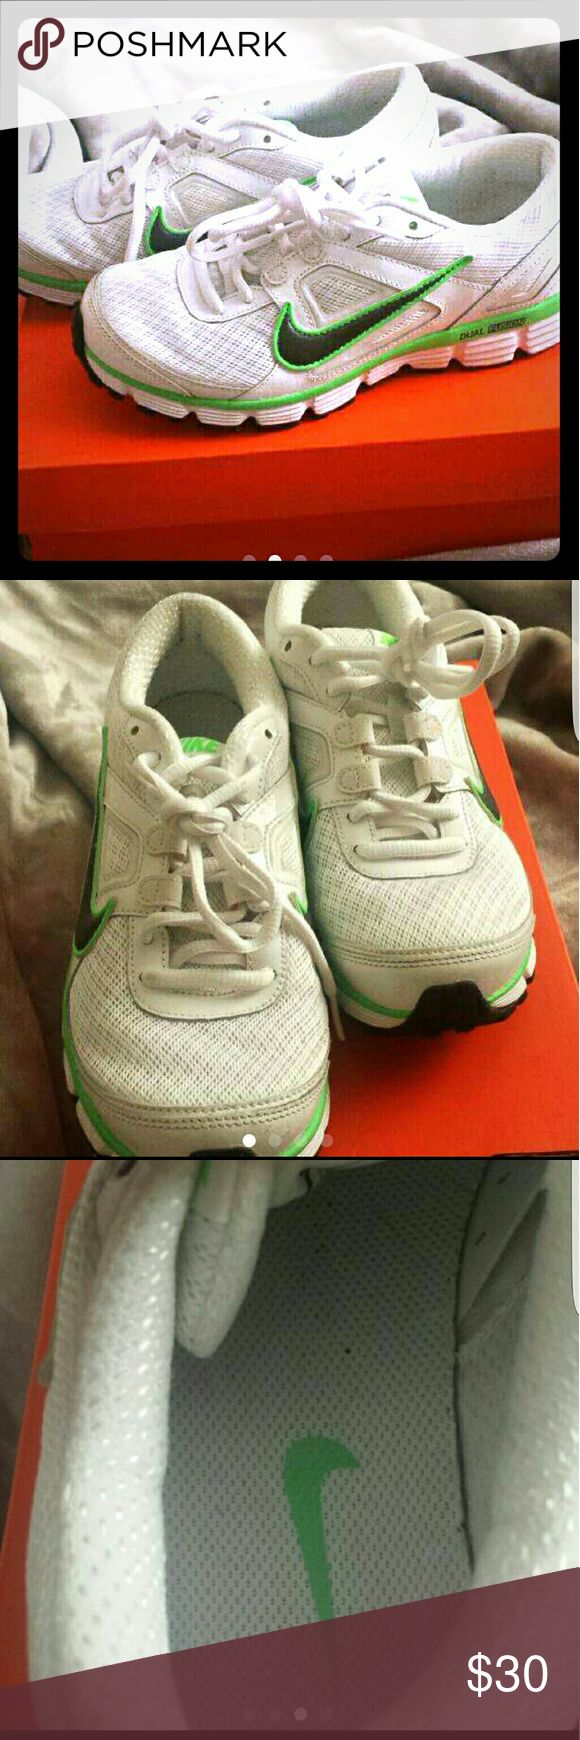 Women's Nike Dual Fusion White and green running shoes. Great condition! There is no wear on the tread at all as you can see from the last picture. The white is still white no yellowing. They are too big so I only wore them a few times! Nike Shoes